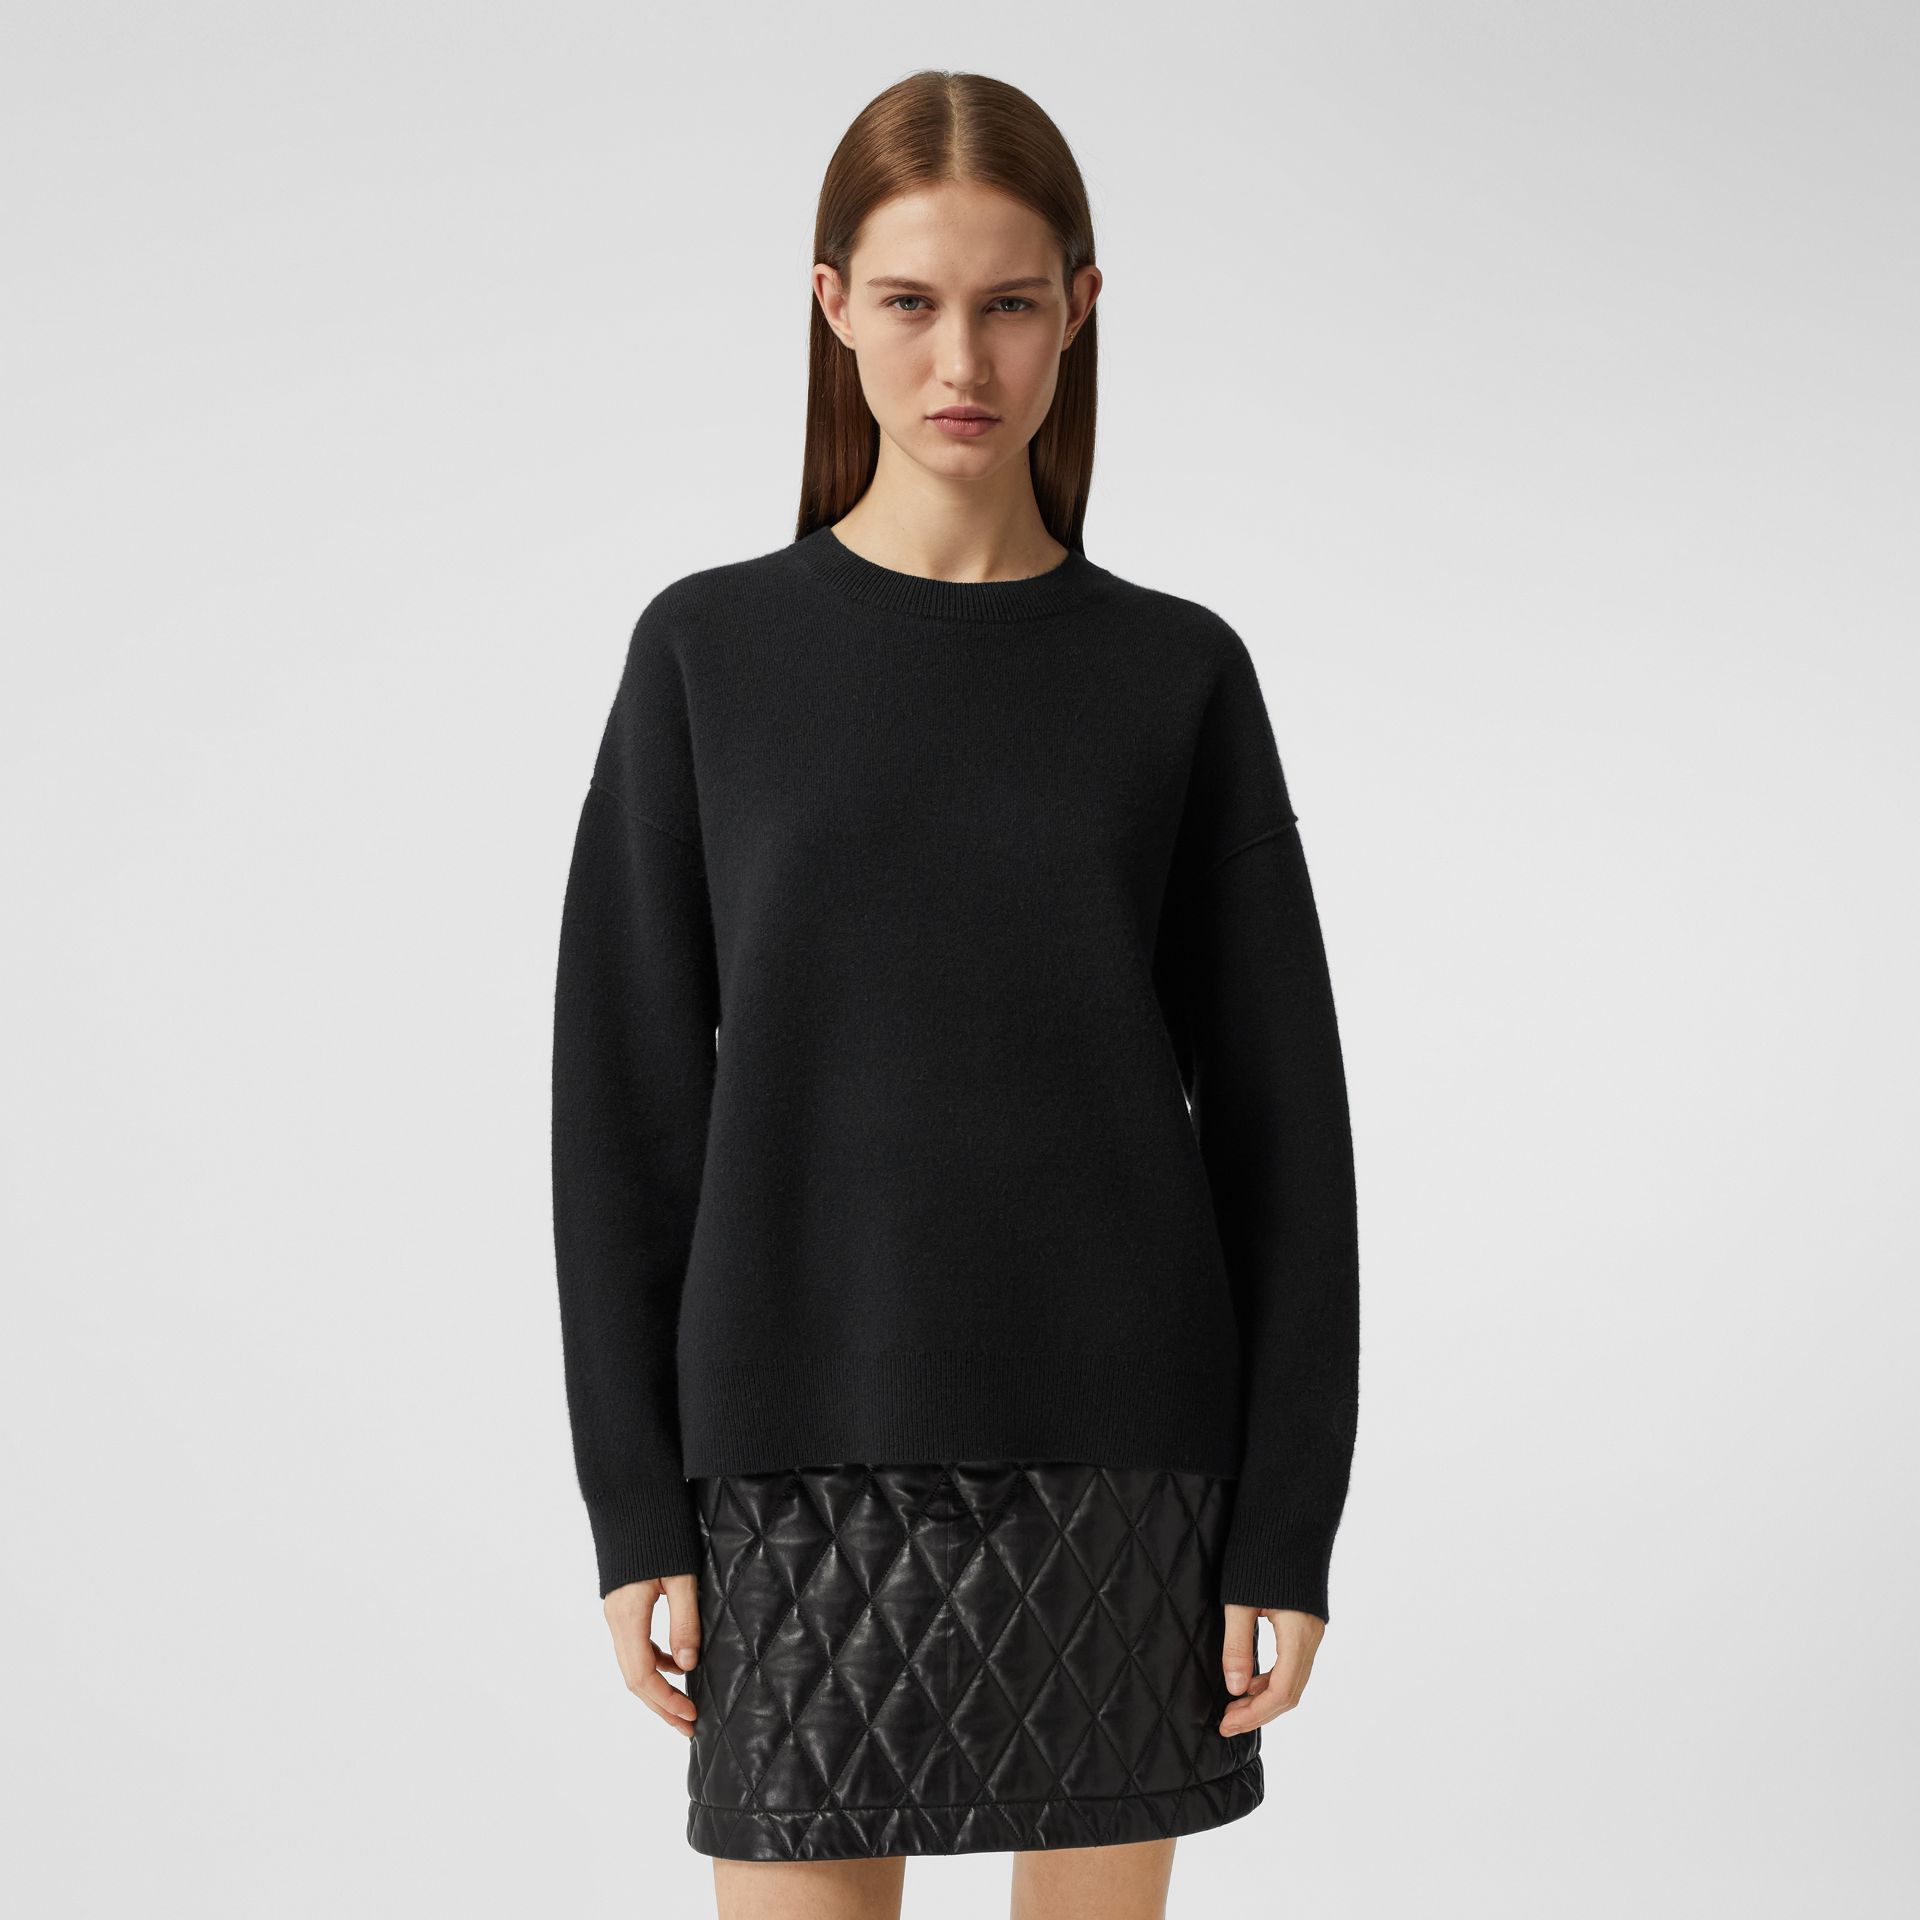 Monogram Motif Cashmere Blend Sweater in Black - Women | Burberry - gallery image 5